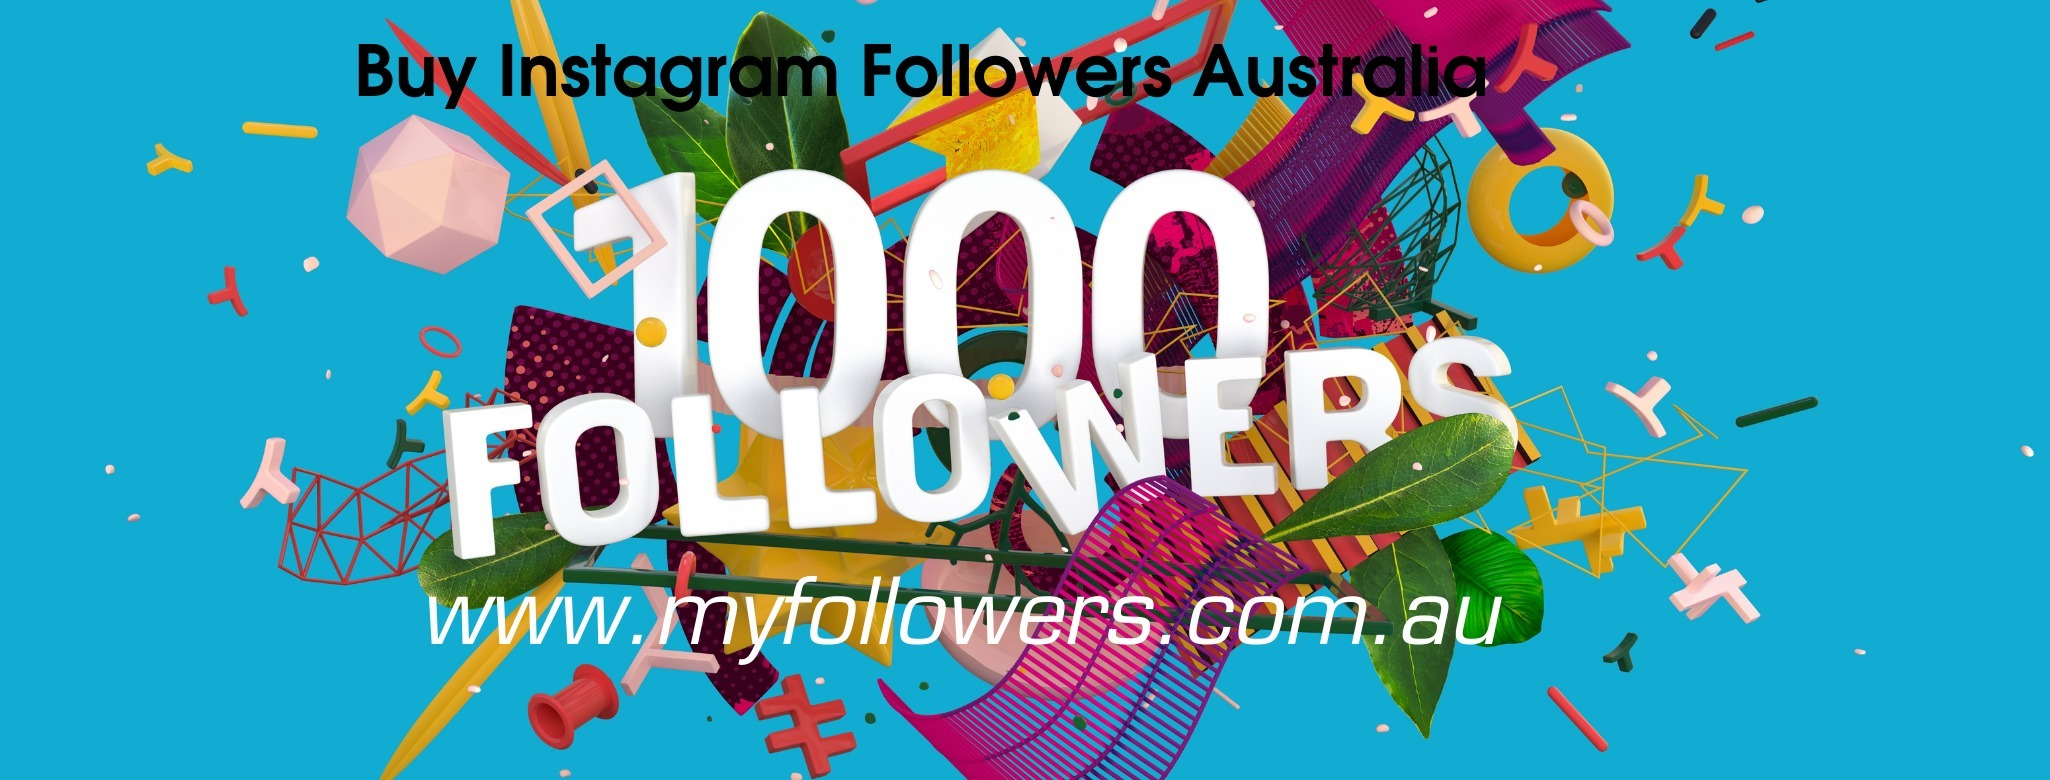 myfollowers00 (@myfollowers00) Cover Image